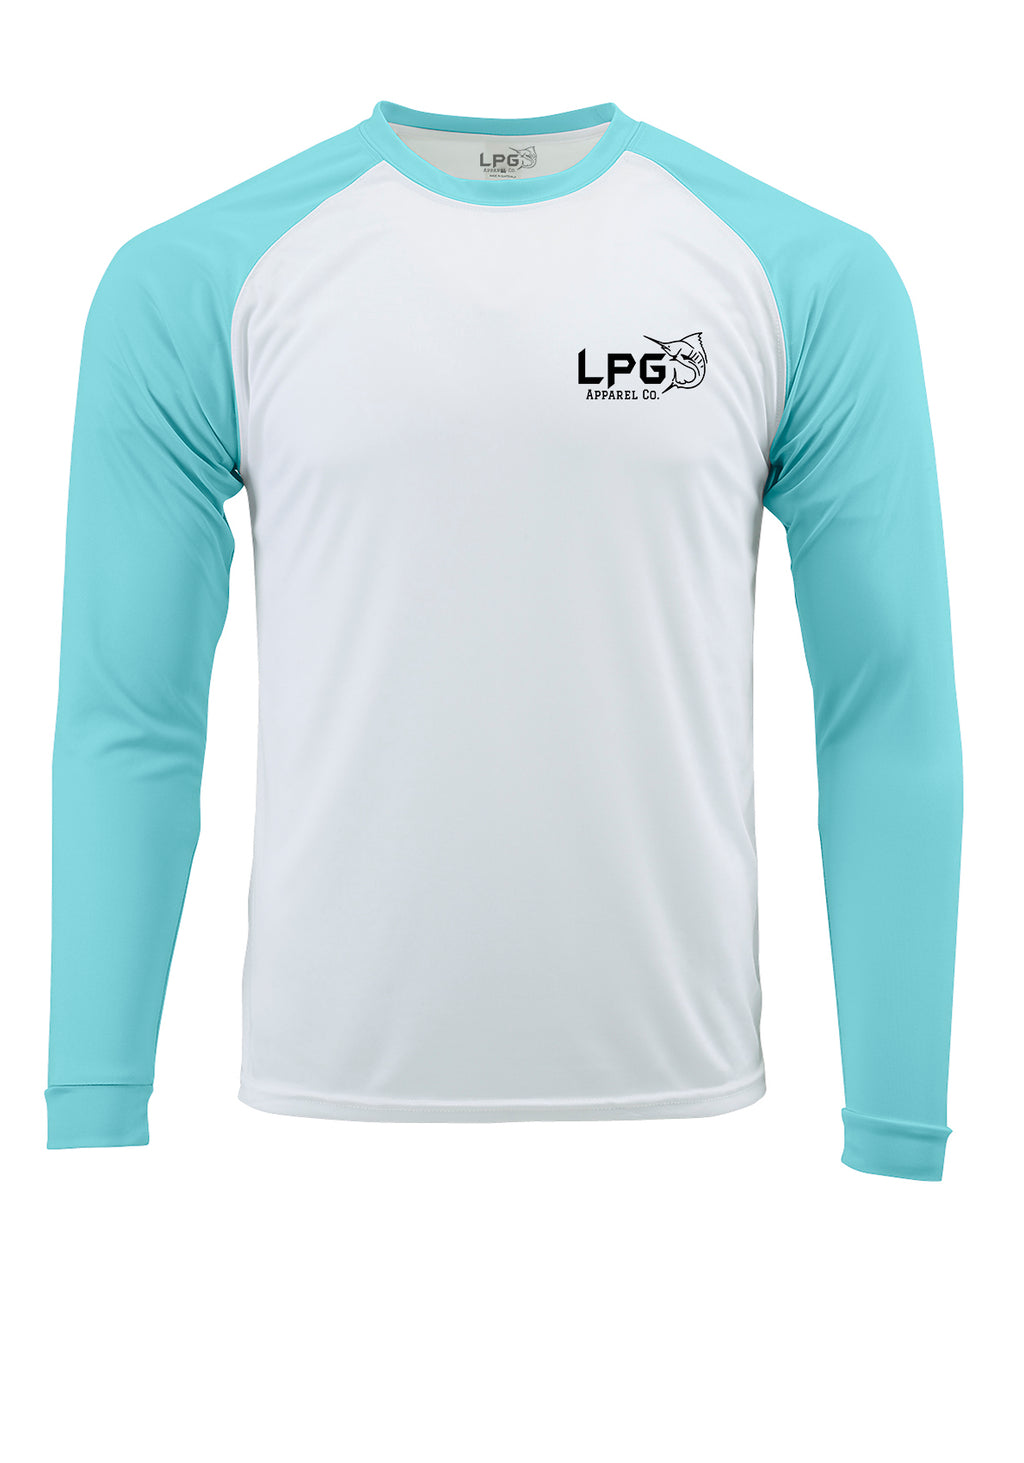 LPG Apparel Co. Grander Marlin Bahama Style  Rashguard LS Performance UPF 50 Unisex Shirt